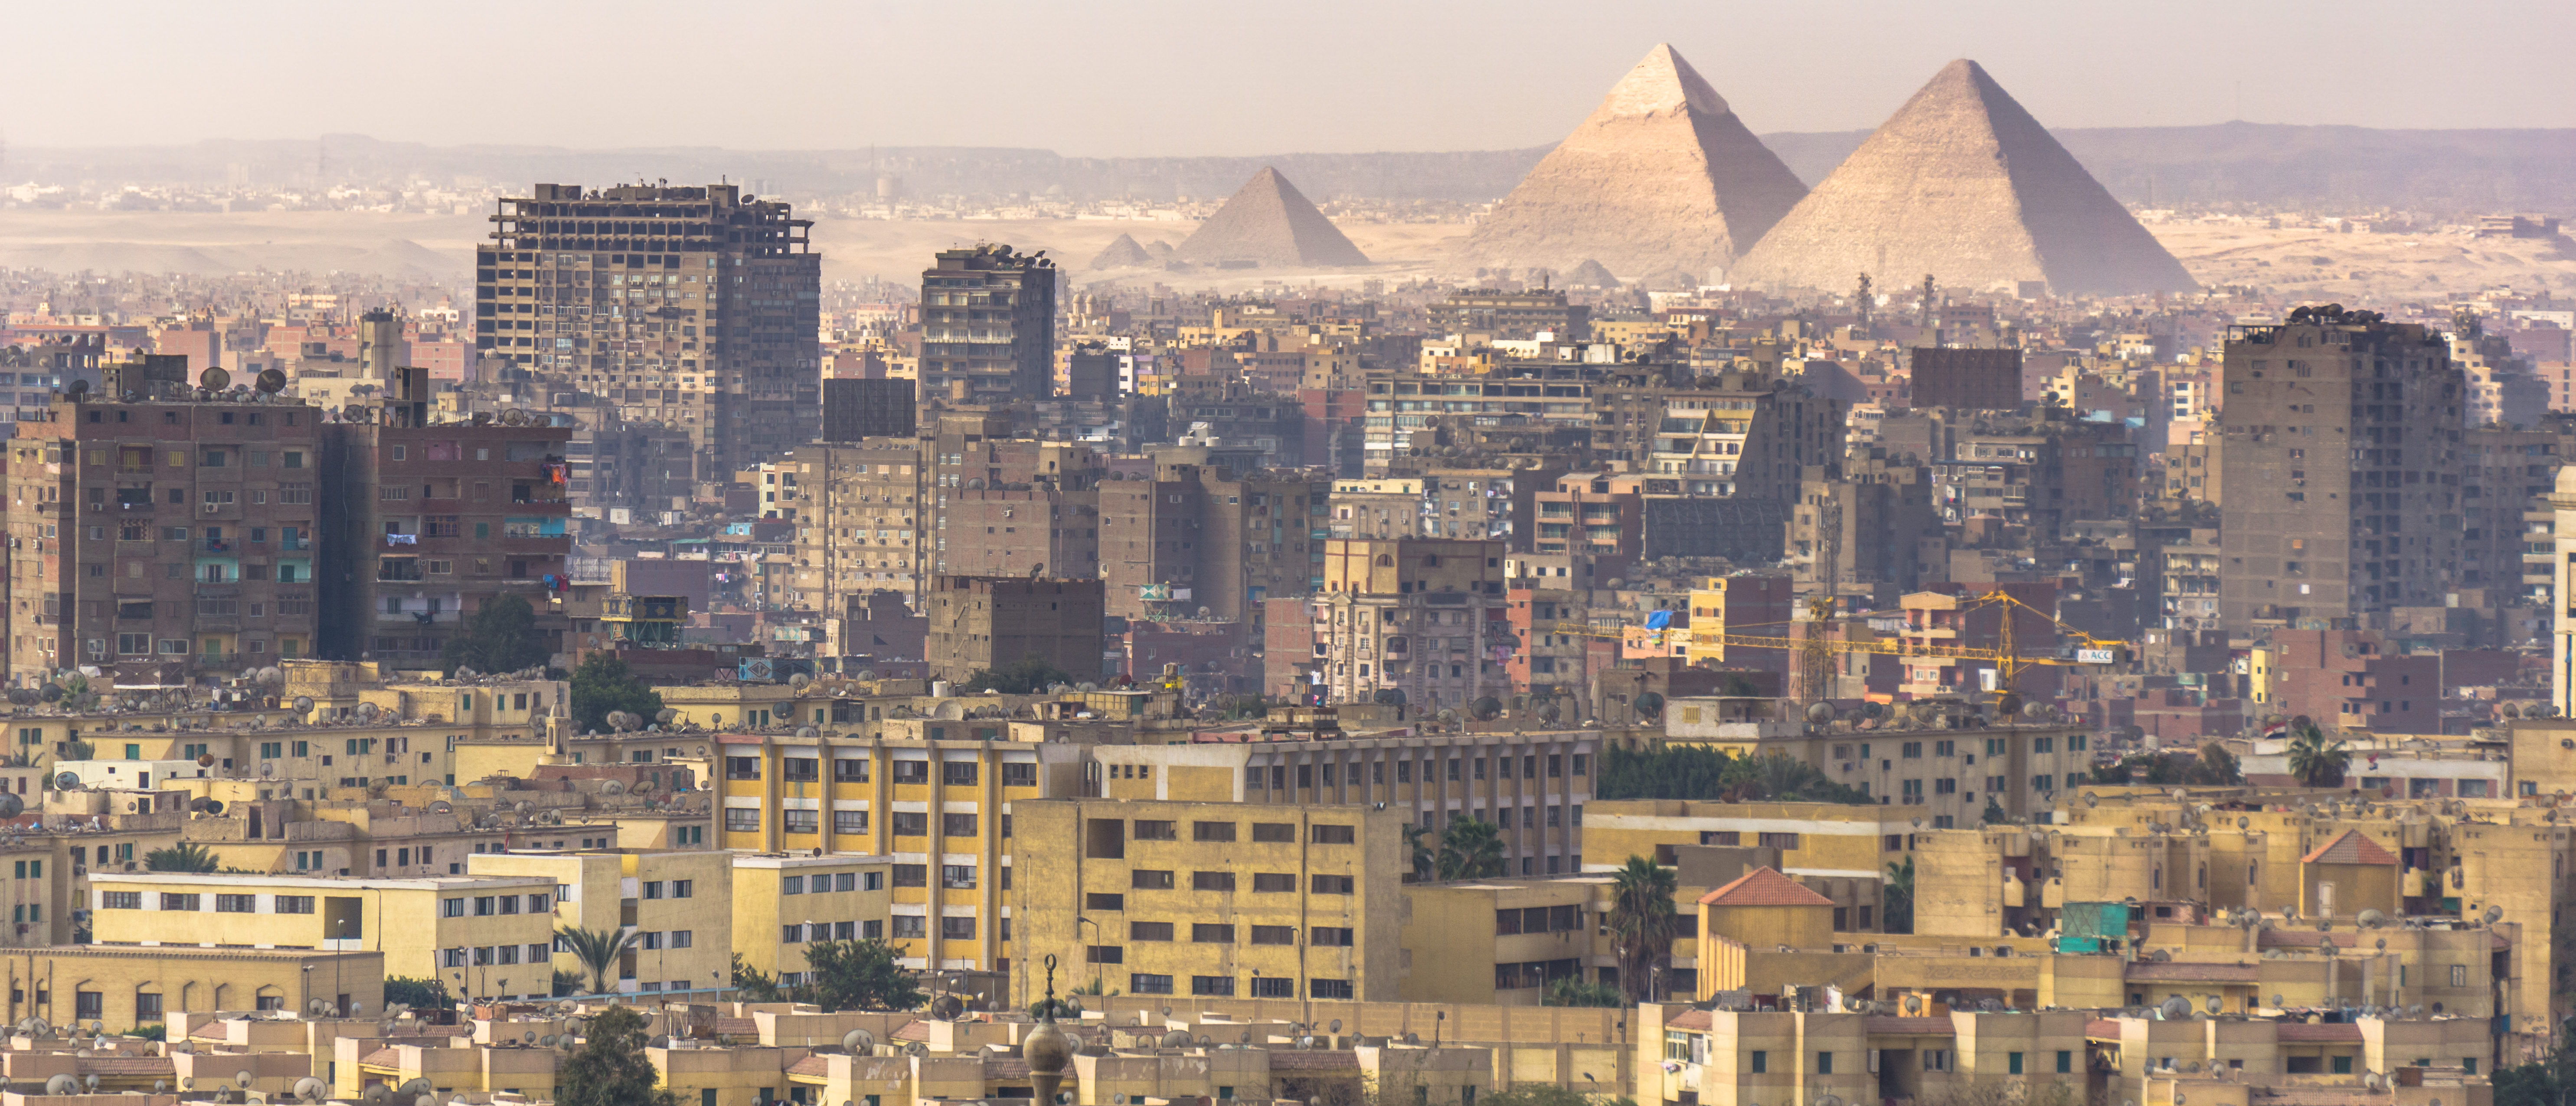 Uber Launches Minibus In Egypt To Help Residents Navigate